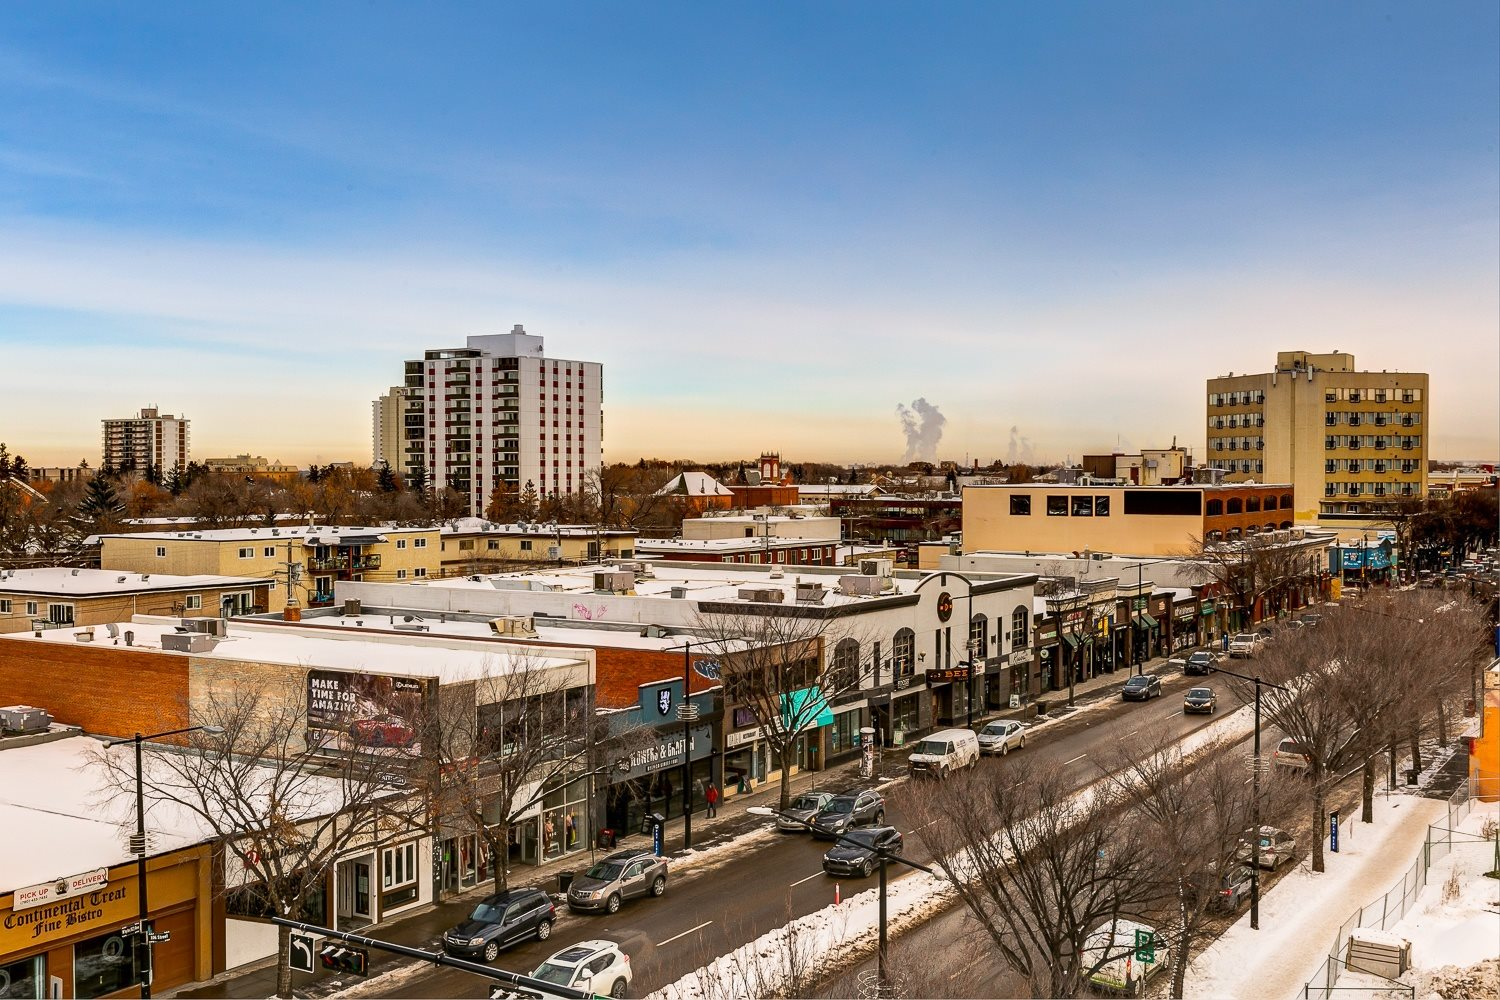 East View from Southpark - Whyte Avenue